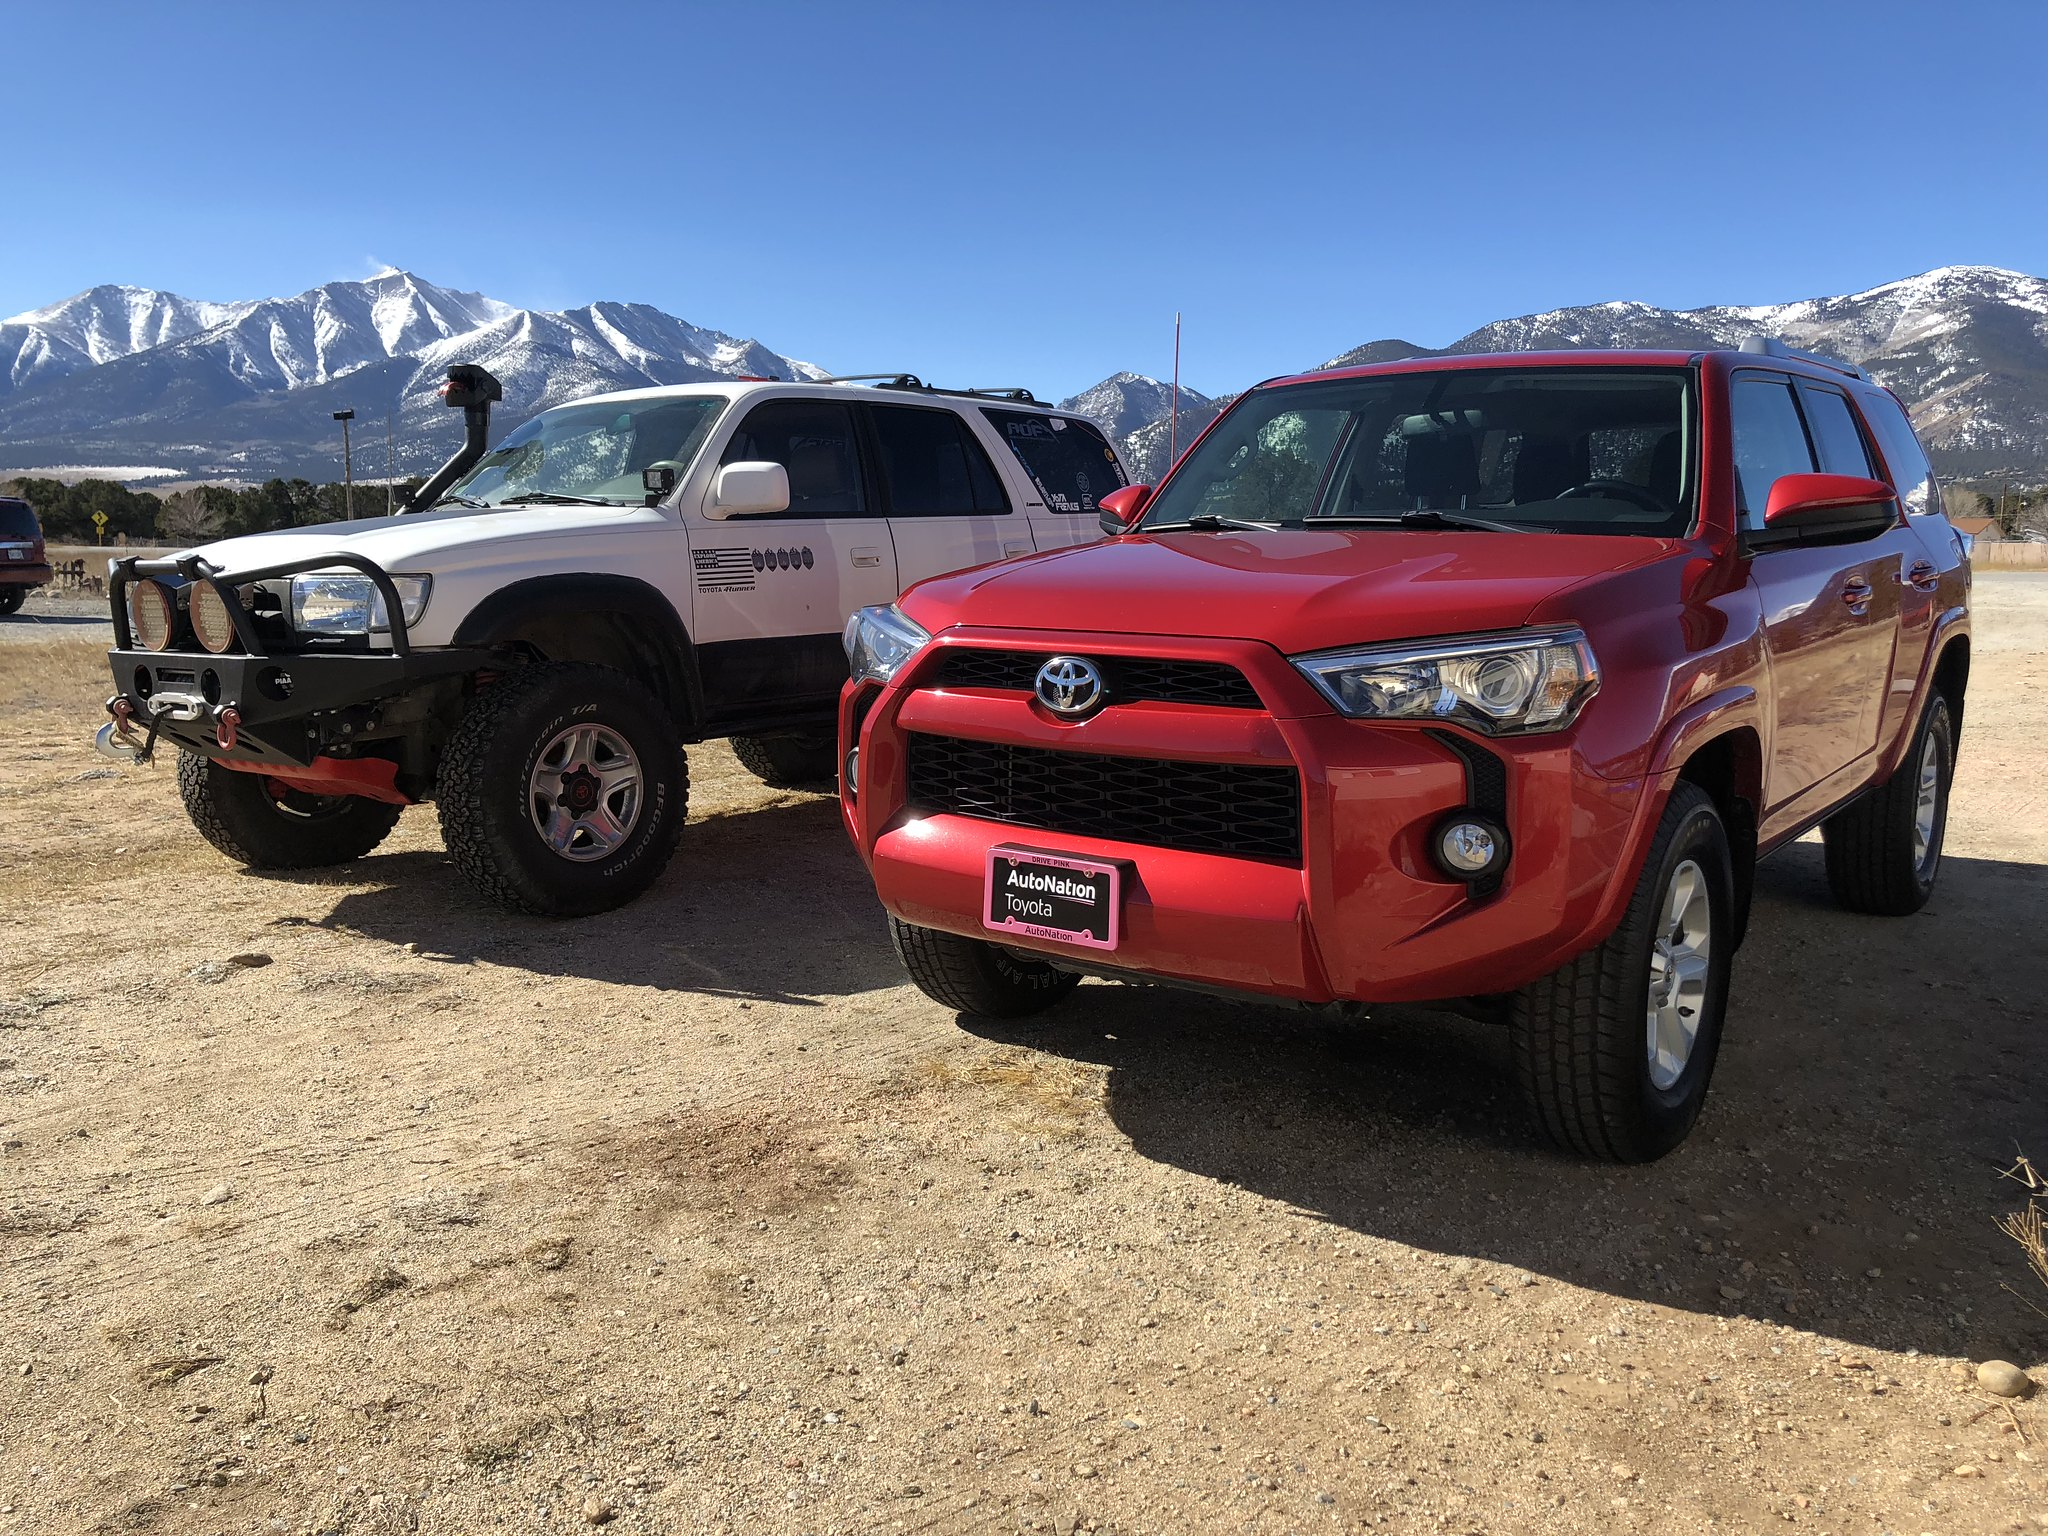 RedRunner s 2016 SR5 Build and Adventure Thread Toyota 4Runner